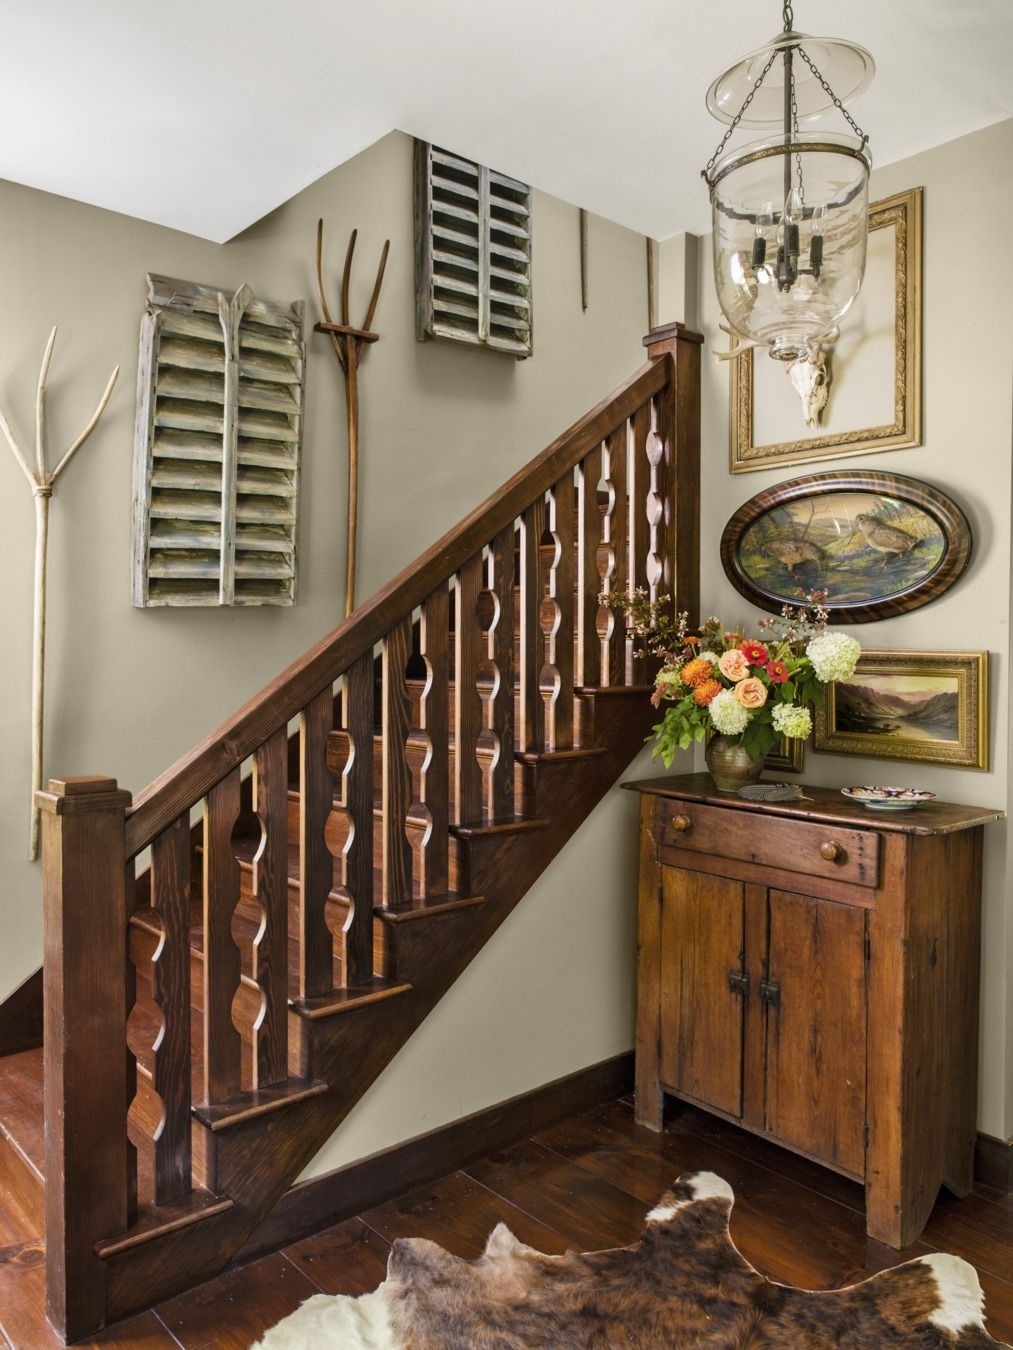 55 Best Staircase Ideas Top Ways To Decorate A Stairway | Wooden Staircase Designs For Homes | Beautiful | Royal Wooden Stair | Residential | Interior | Iron